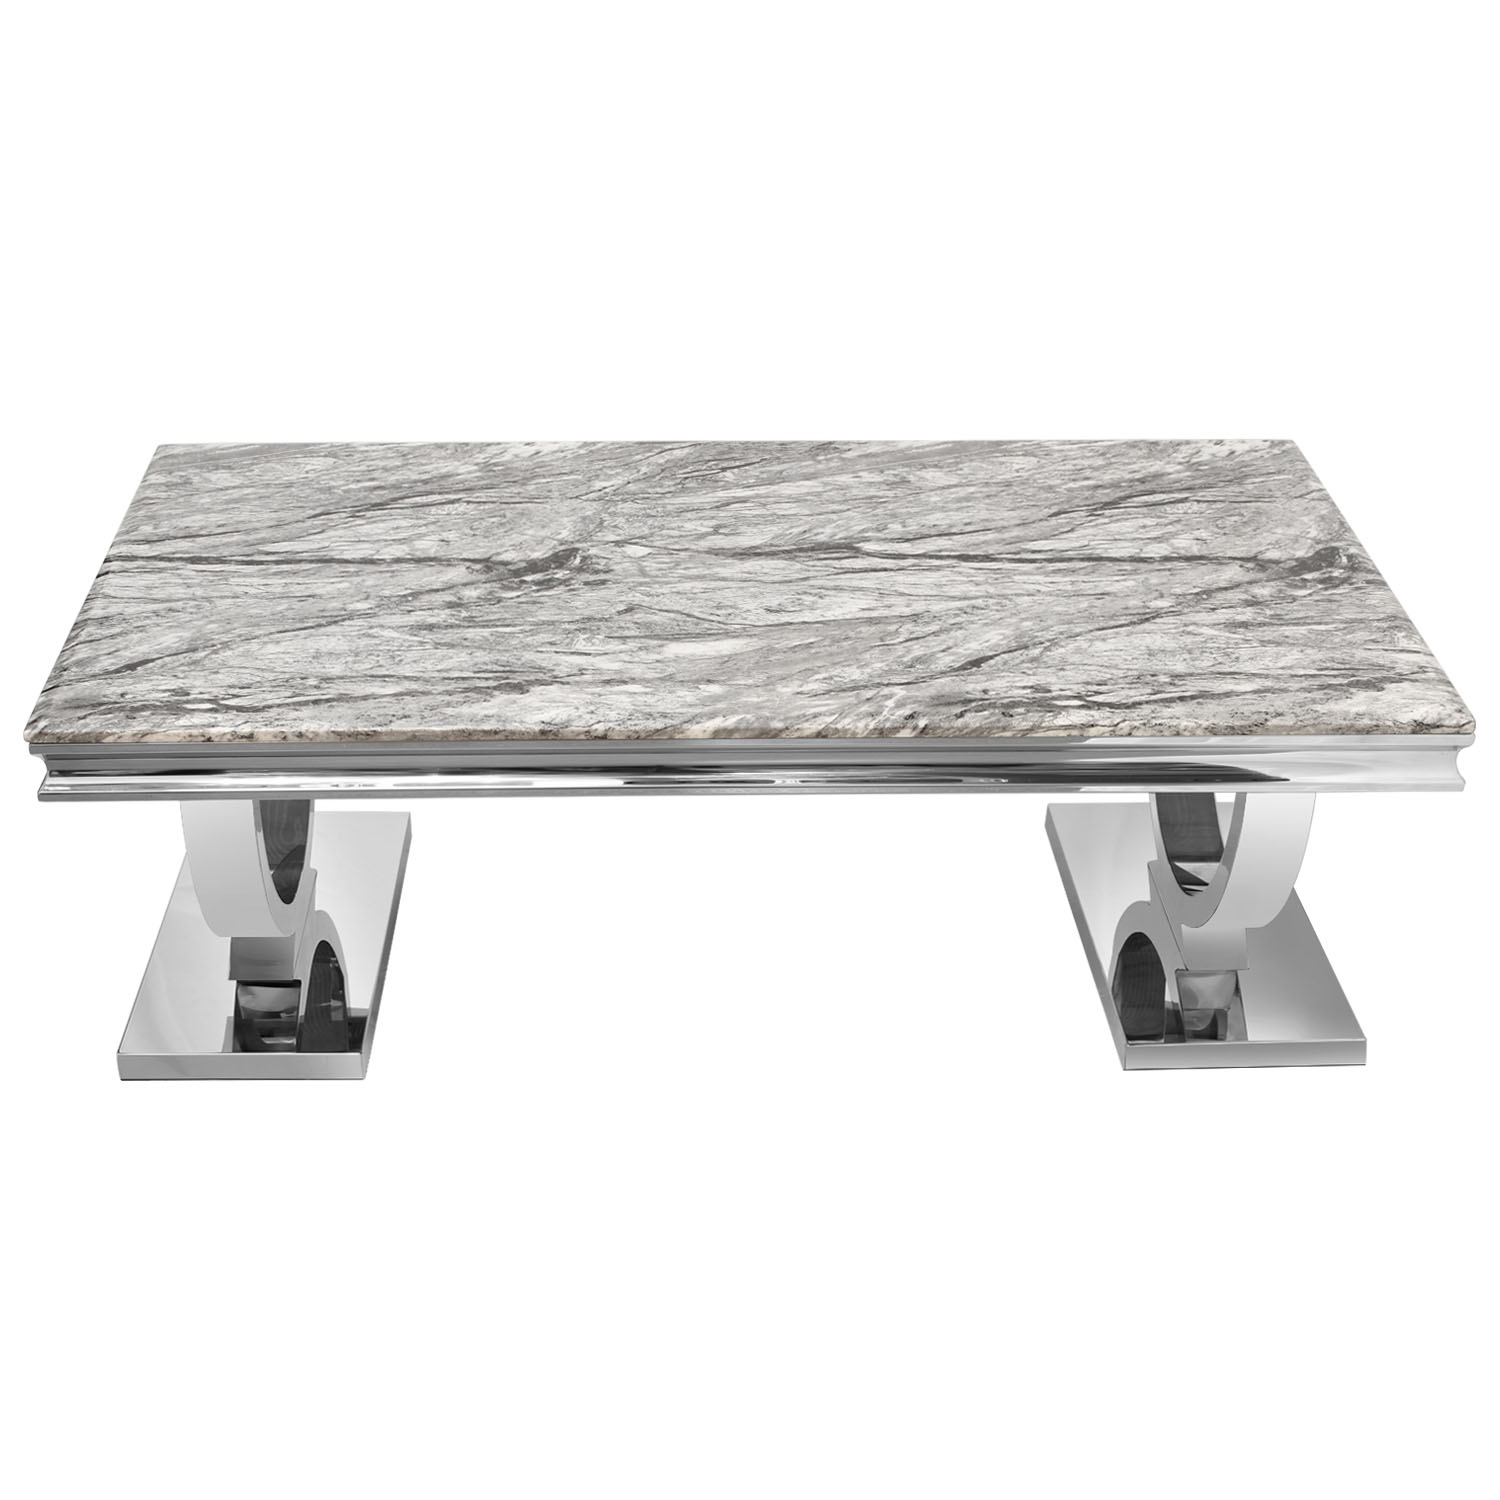 Awe Inspiring Details About Modern Cream Grey Marble Top Coffee Table Desk Home Living Room Furniture Set Squirreltailoven Fun Painted Chair Ideas Images Squirreltailovenorg